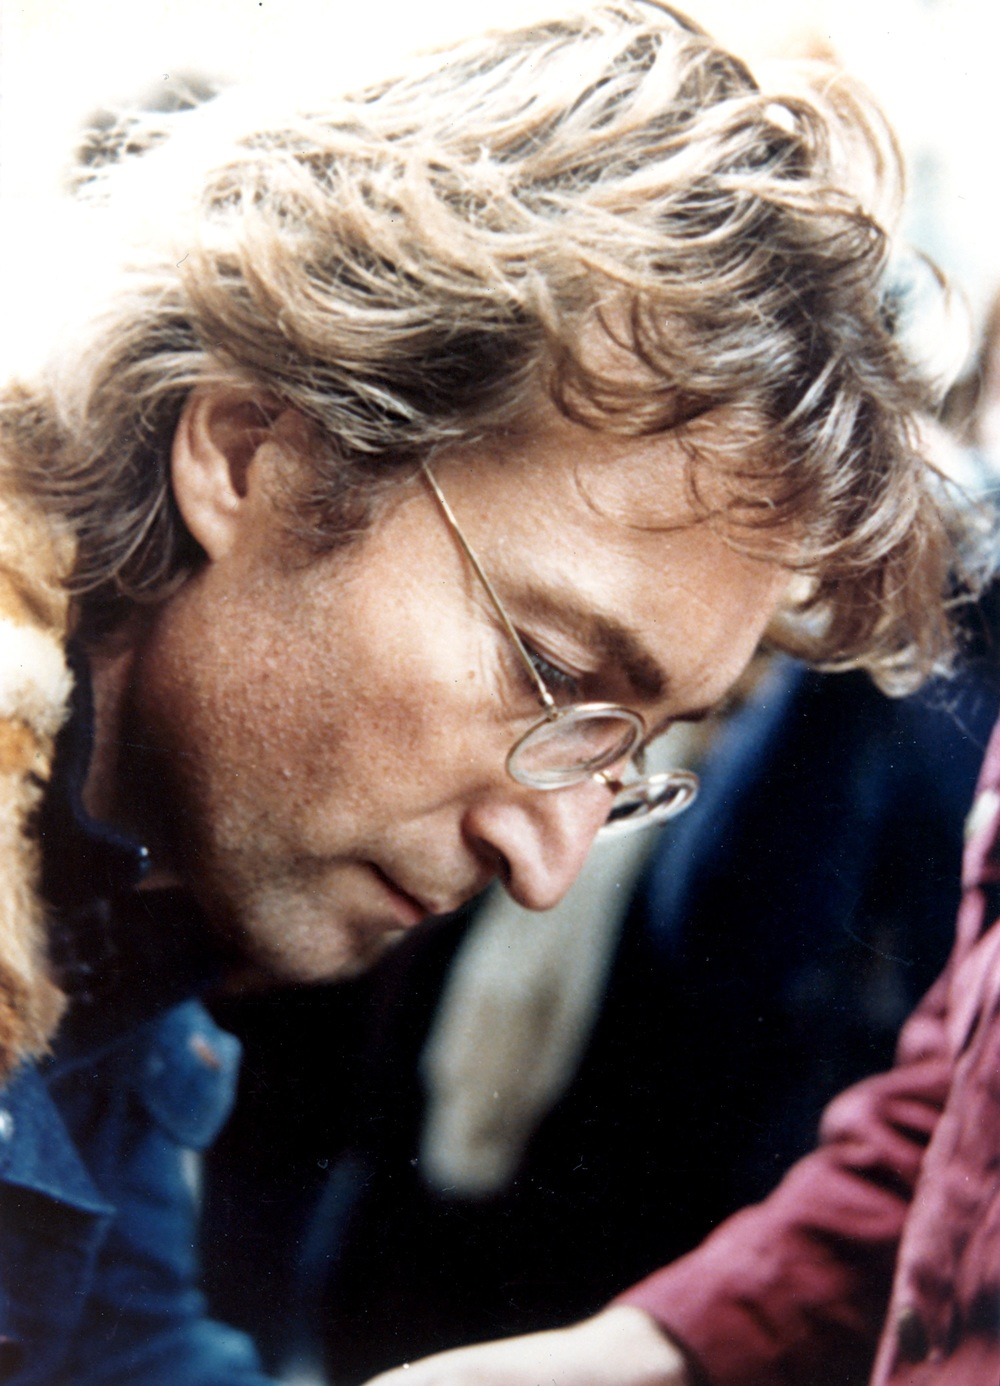 John Lennon in New York City, 1976.